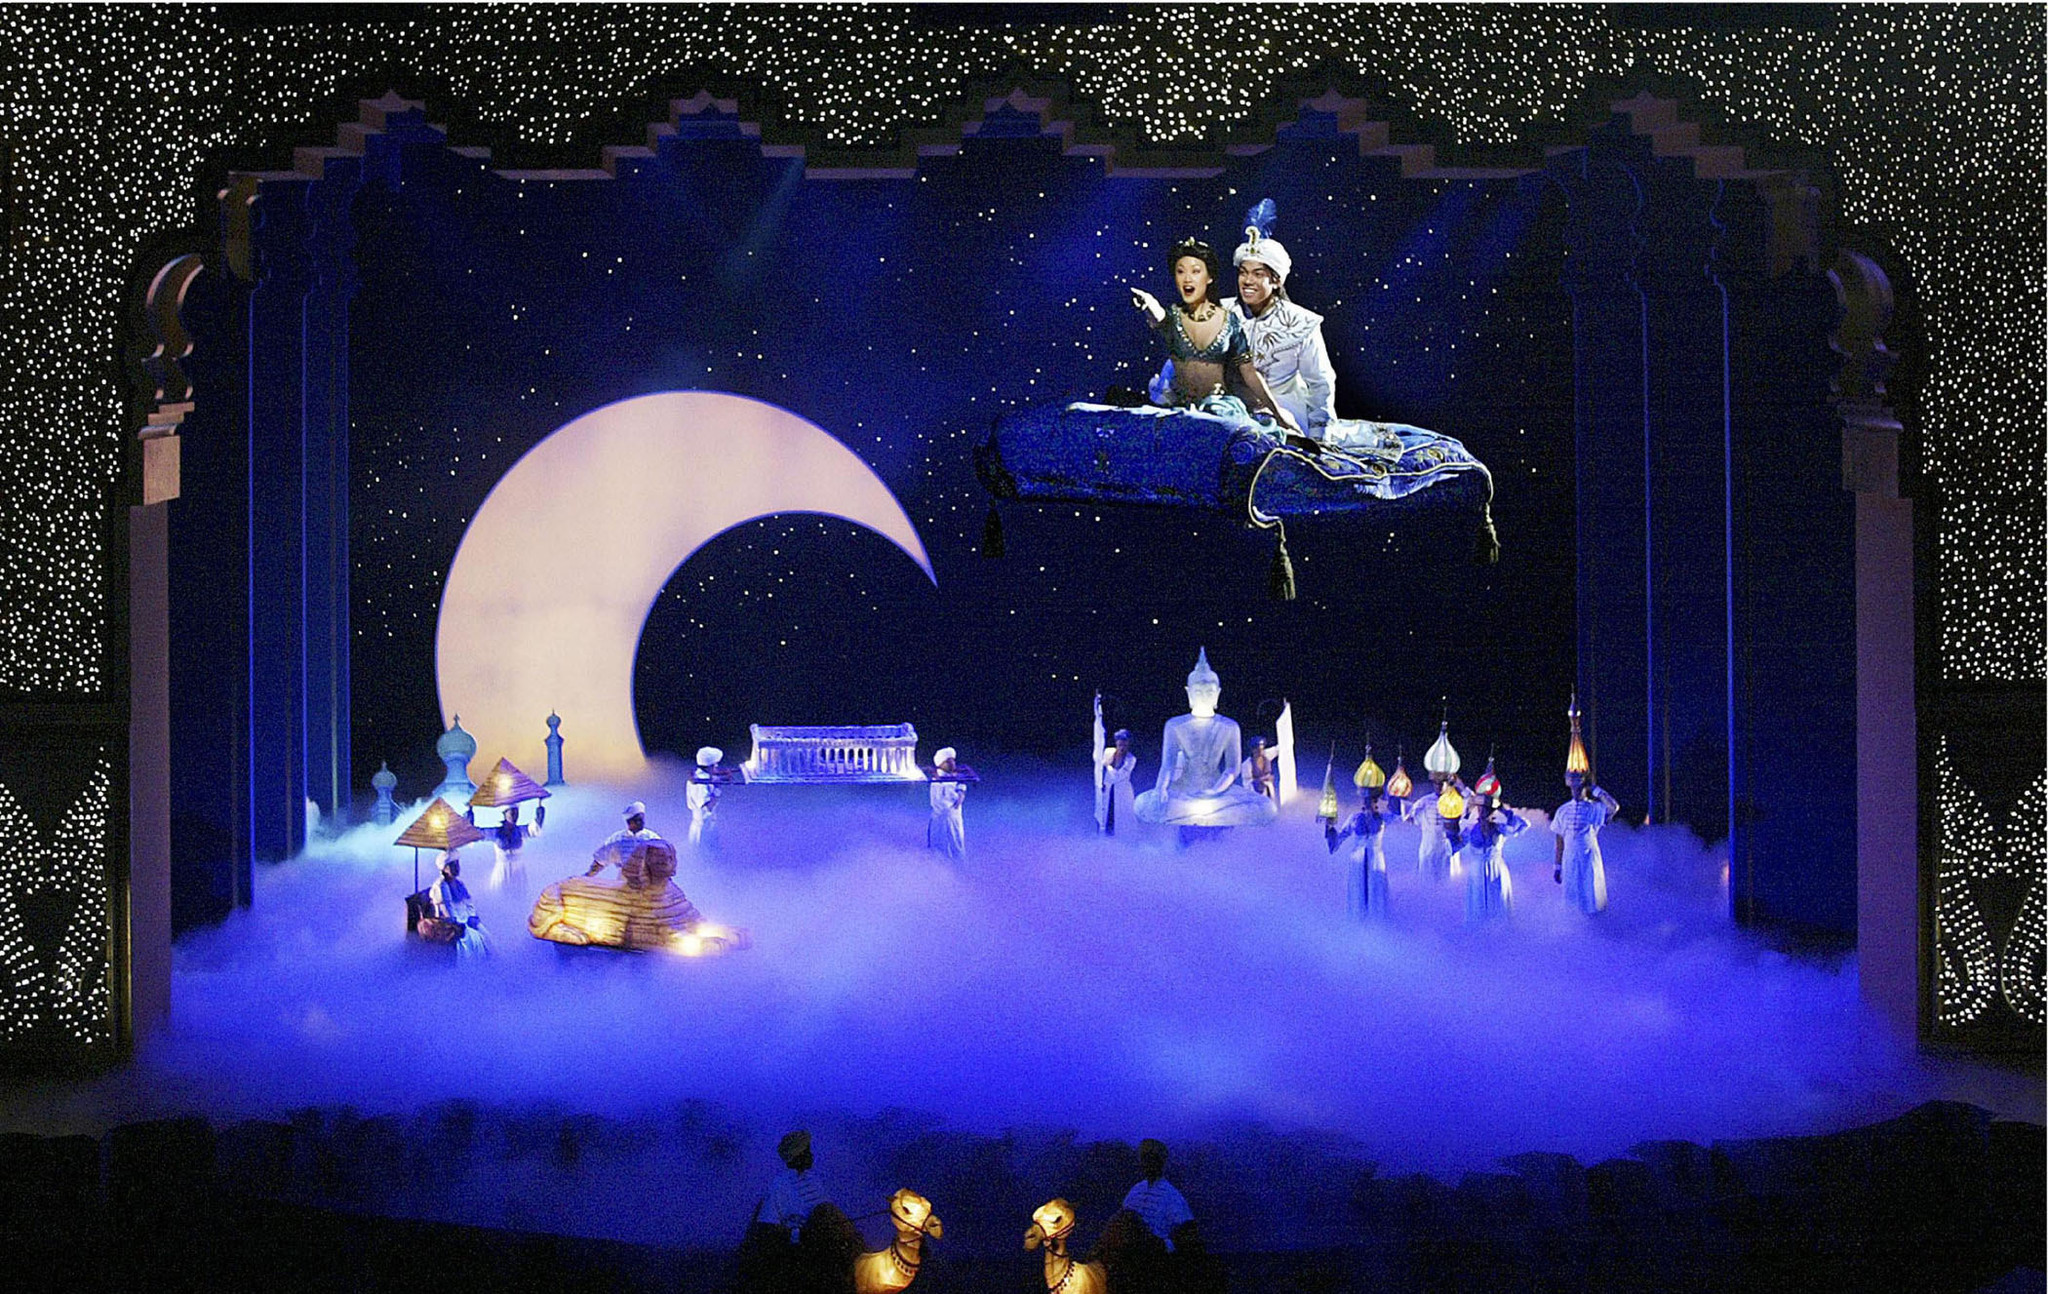 Aladdin Runs Out Of Wishes As Curtain Falls At Disney